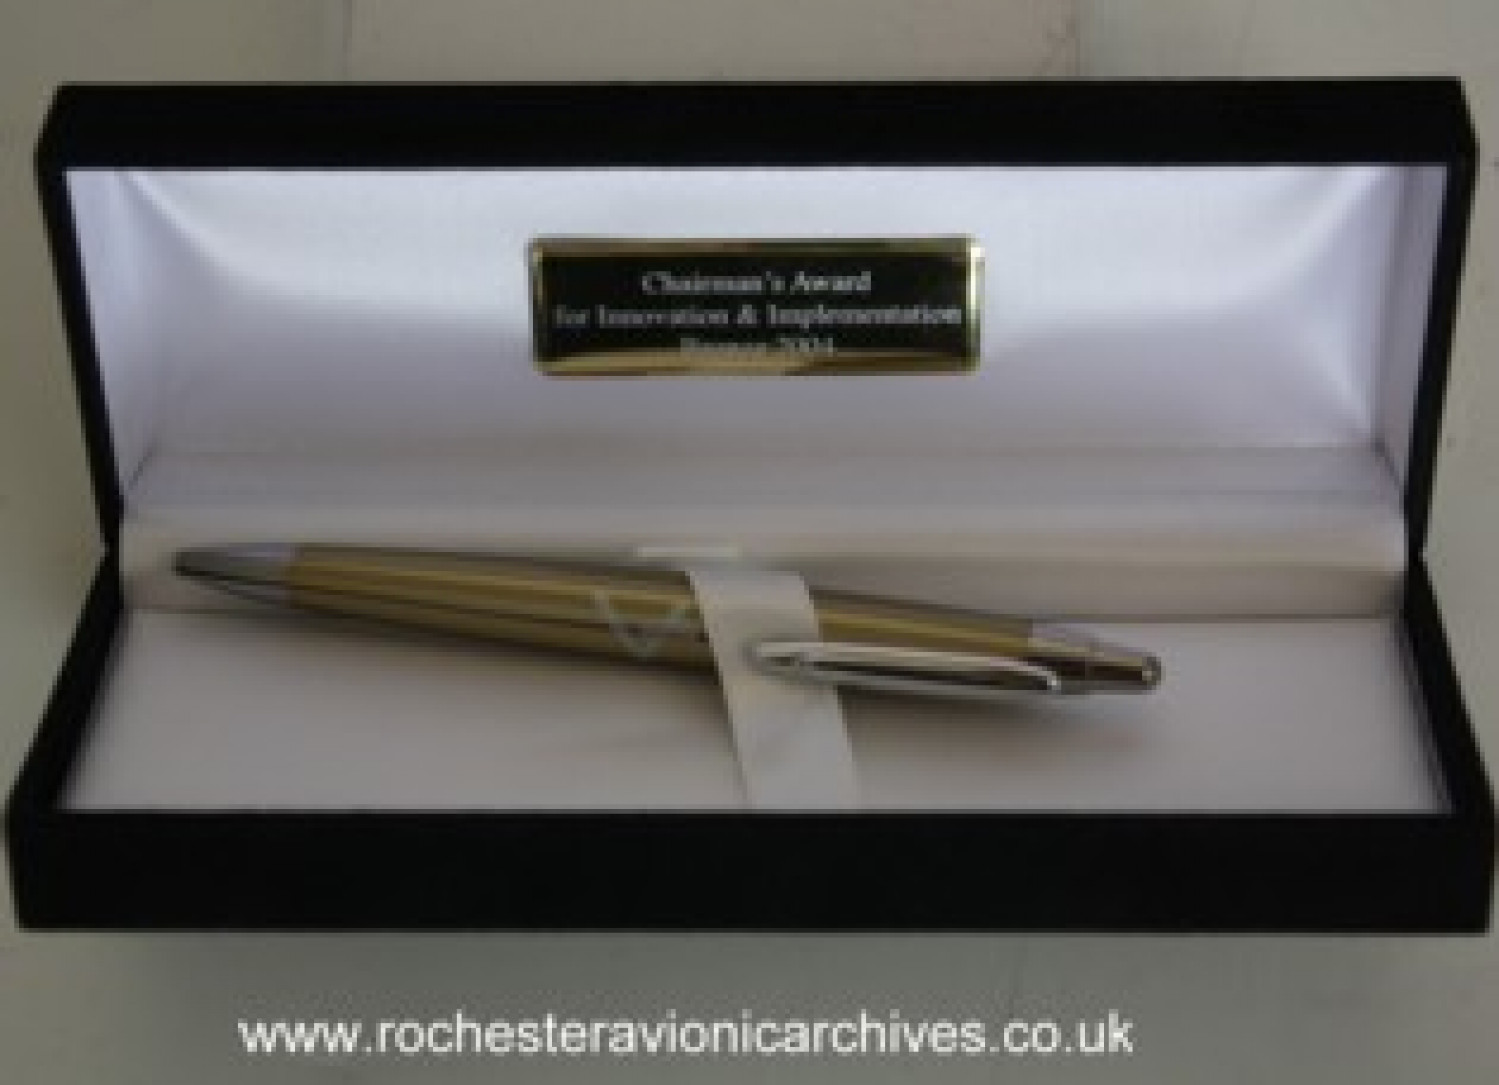 Chairman's Bronze Award Pen for 2004